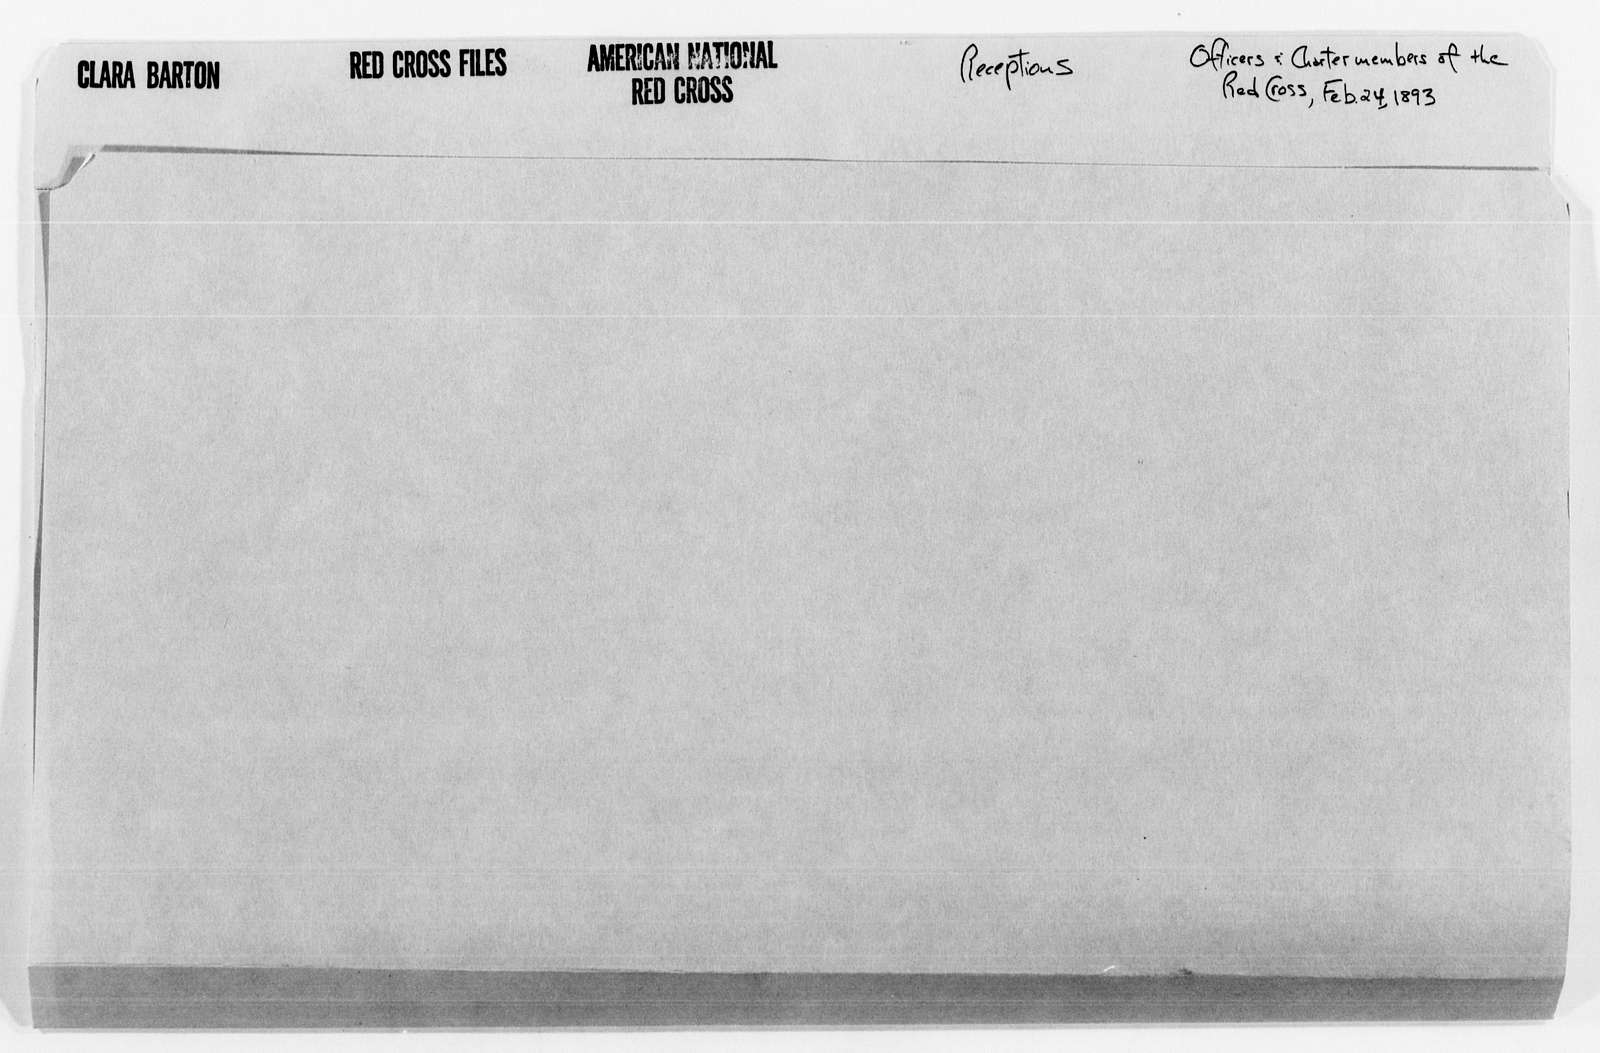 Clara Barton Papers: Red Cross File, 1863-1957; American National Red Cross, 1878-1957; Receptions; Officers and charter members of the Red Cross, 1893